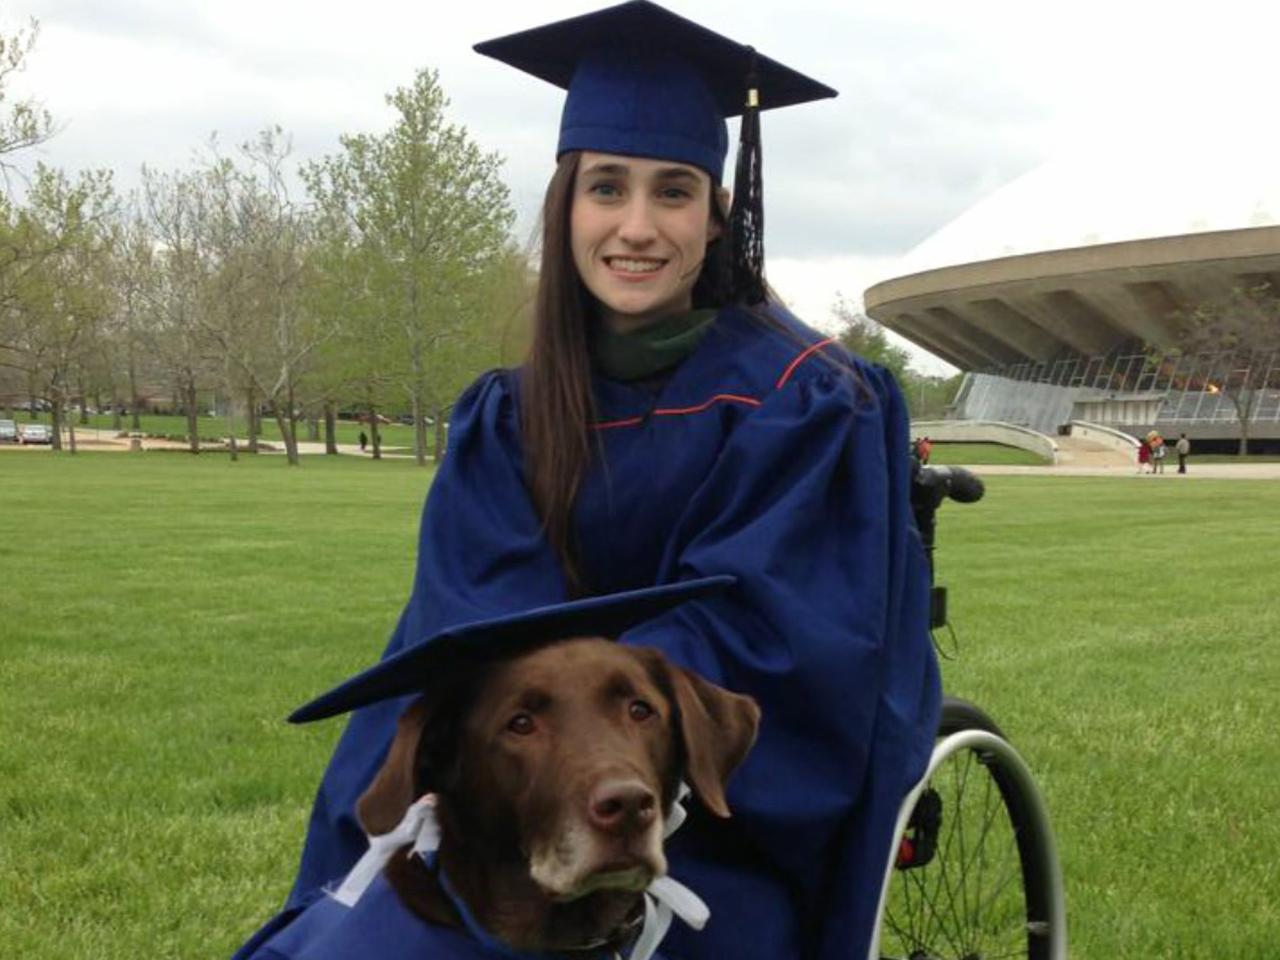 Pup in cap and gown graduates with owner - Video on NBCNews.com